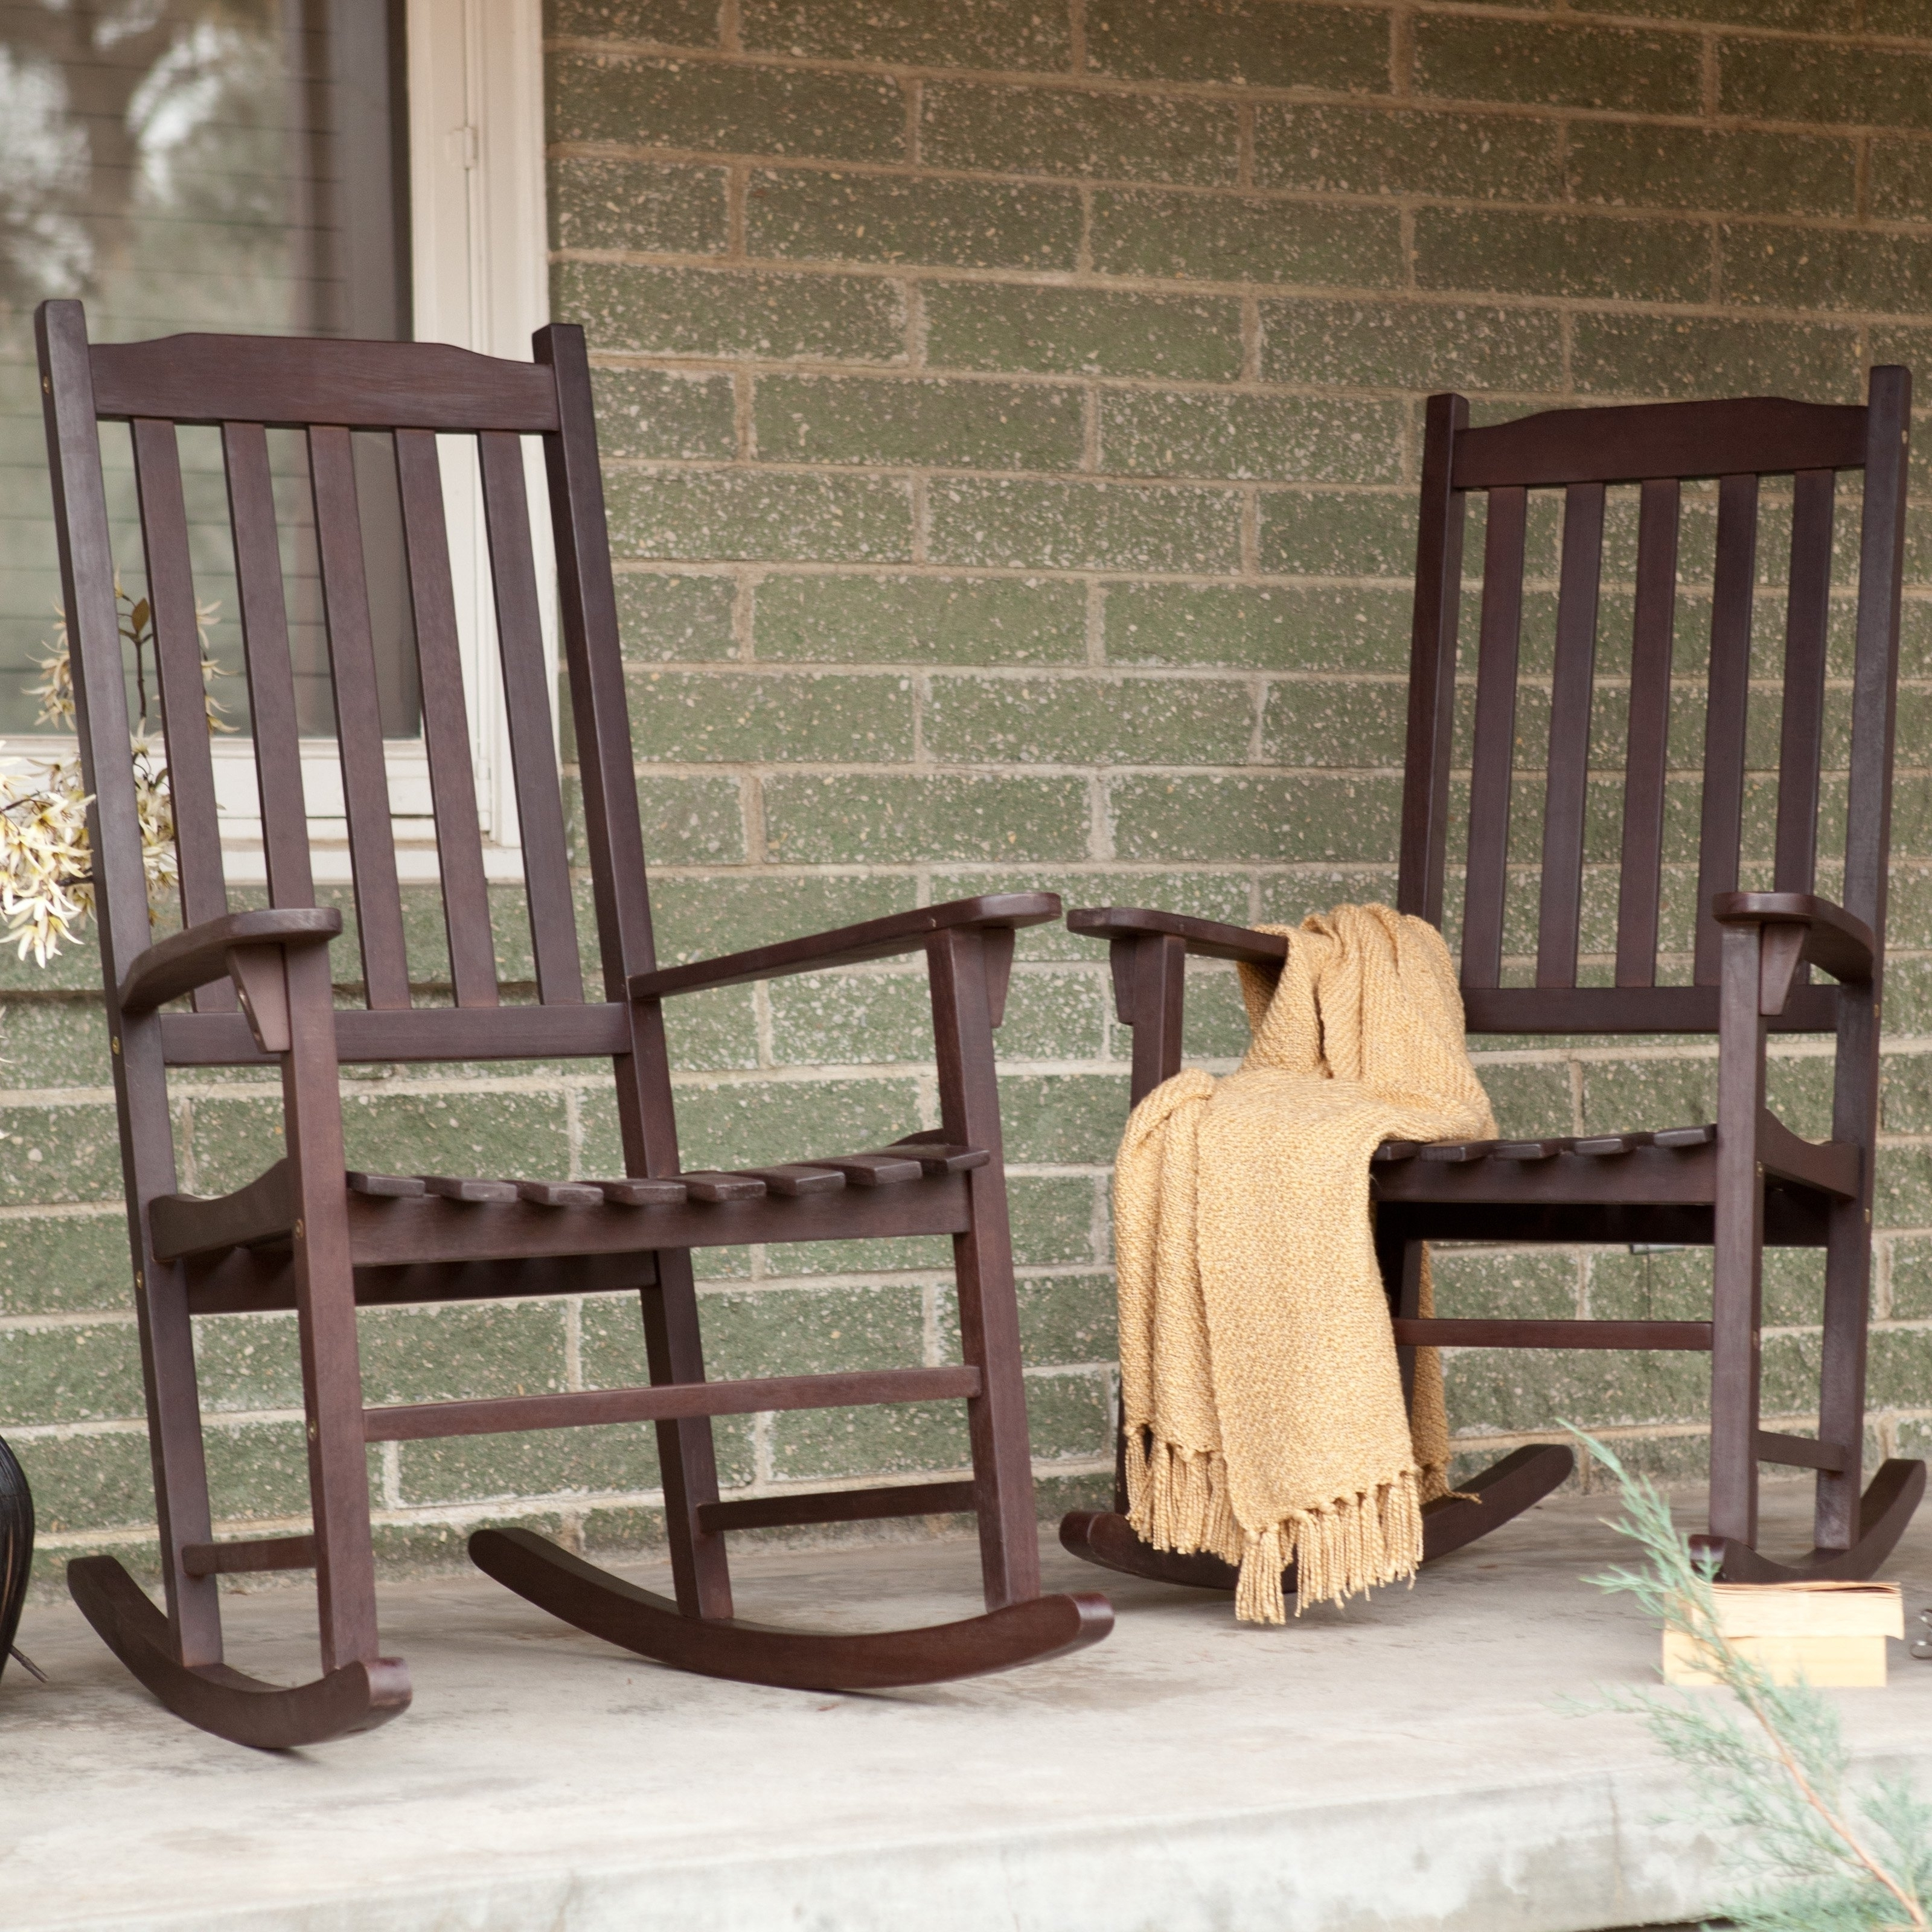 Preferred Outside Rocking Chair Sets In Belham Living Richmond Rocking Chairs Set Of 2 Outdoor Rocking (View 11 of 15)